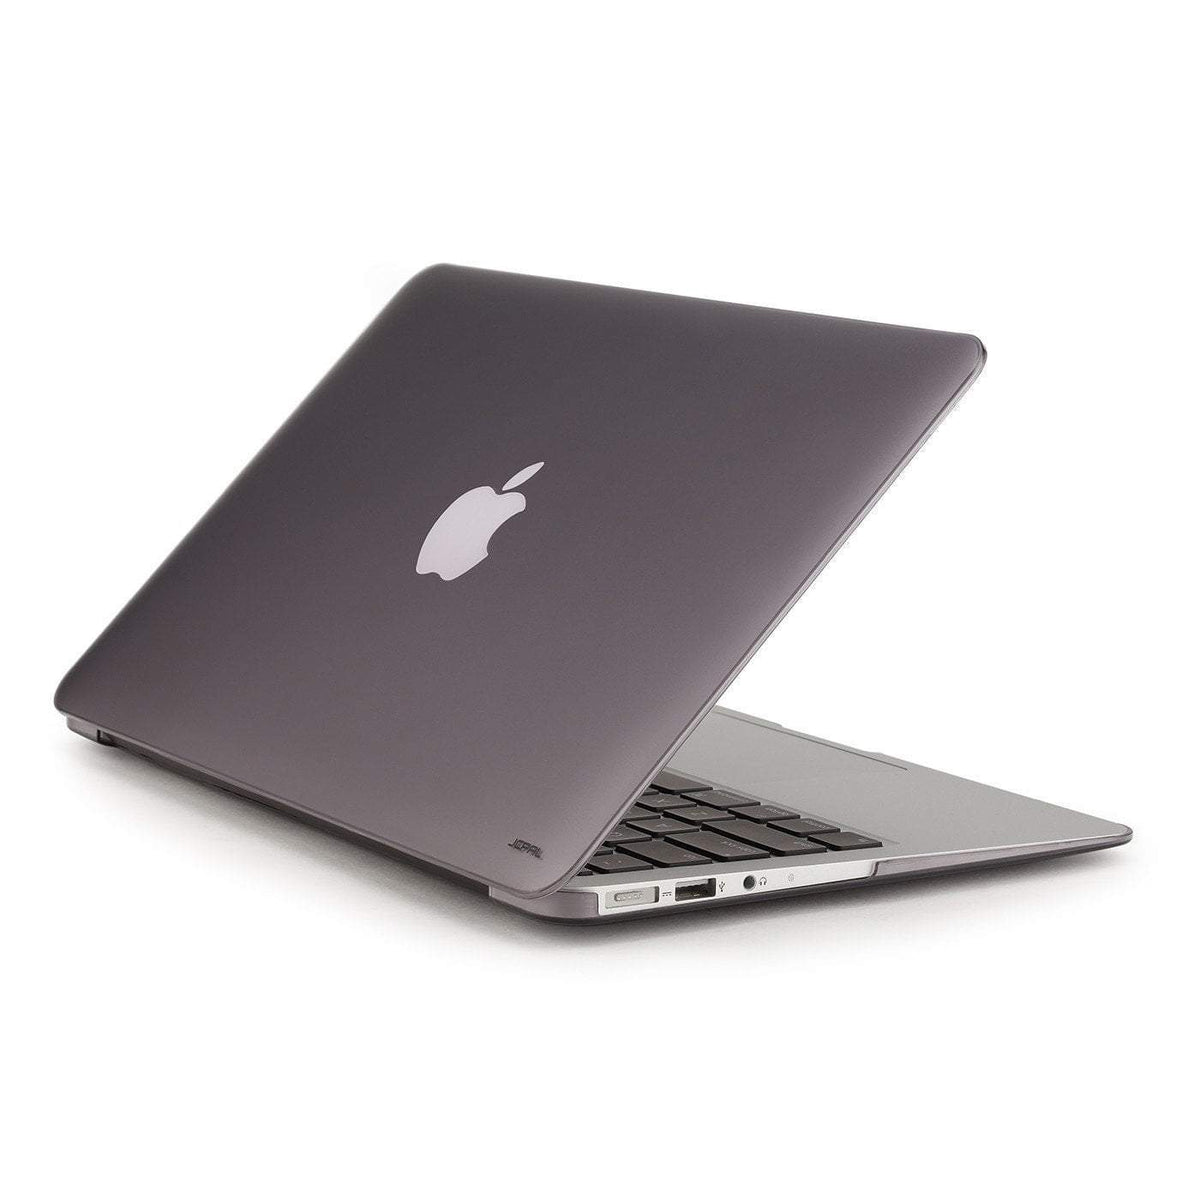 "JCPal Case MacGuard Ultra-thin Protective Case for MacBook Air 11"" MacBook Air 11"" / Grey"